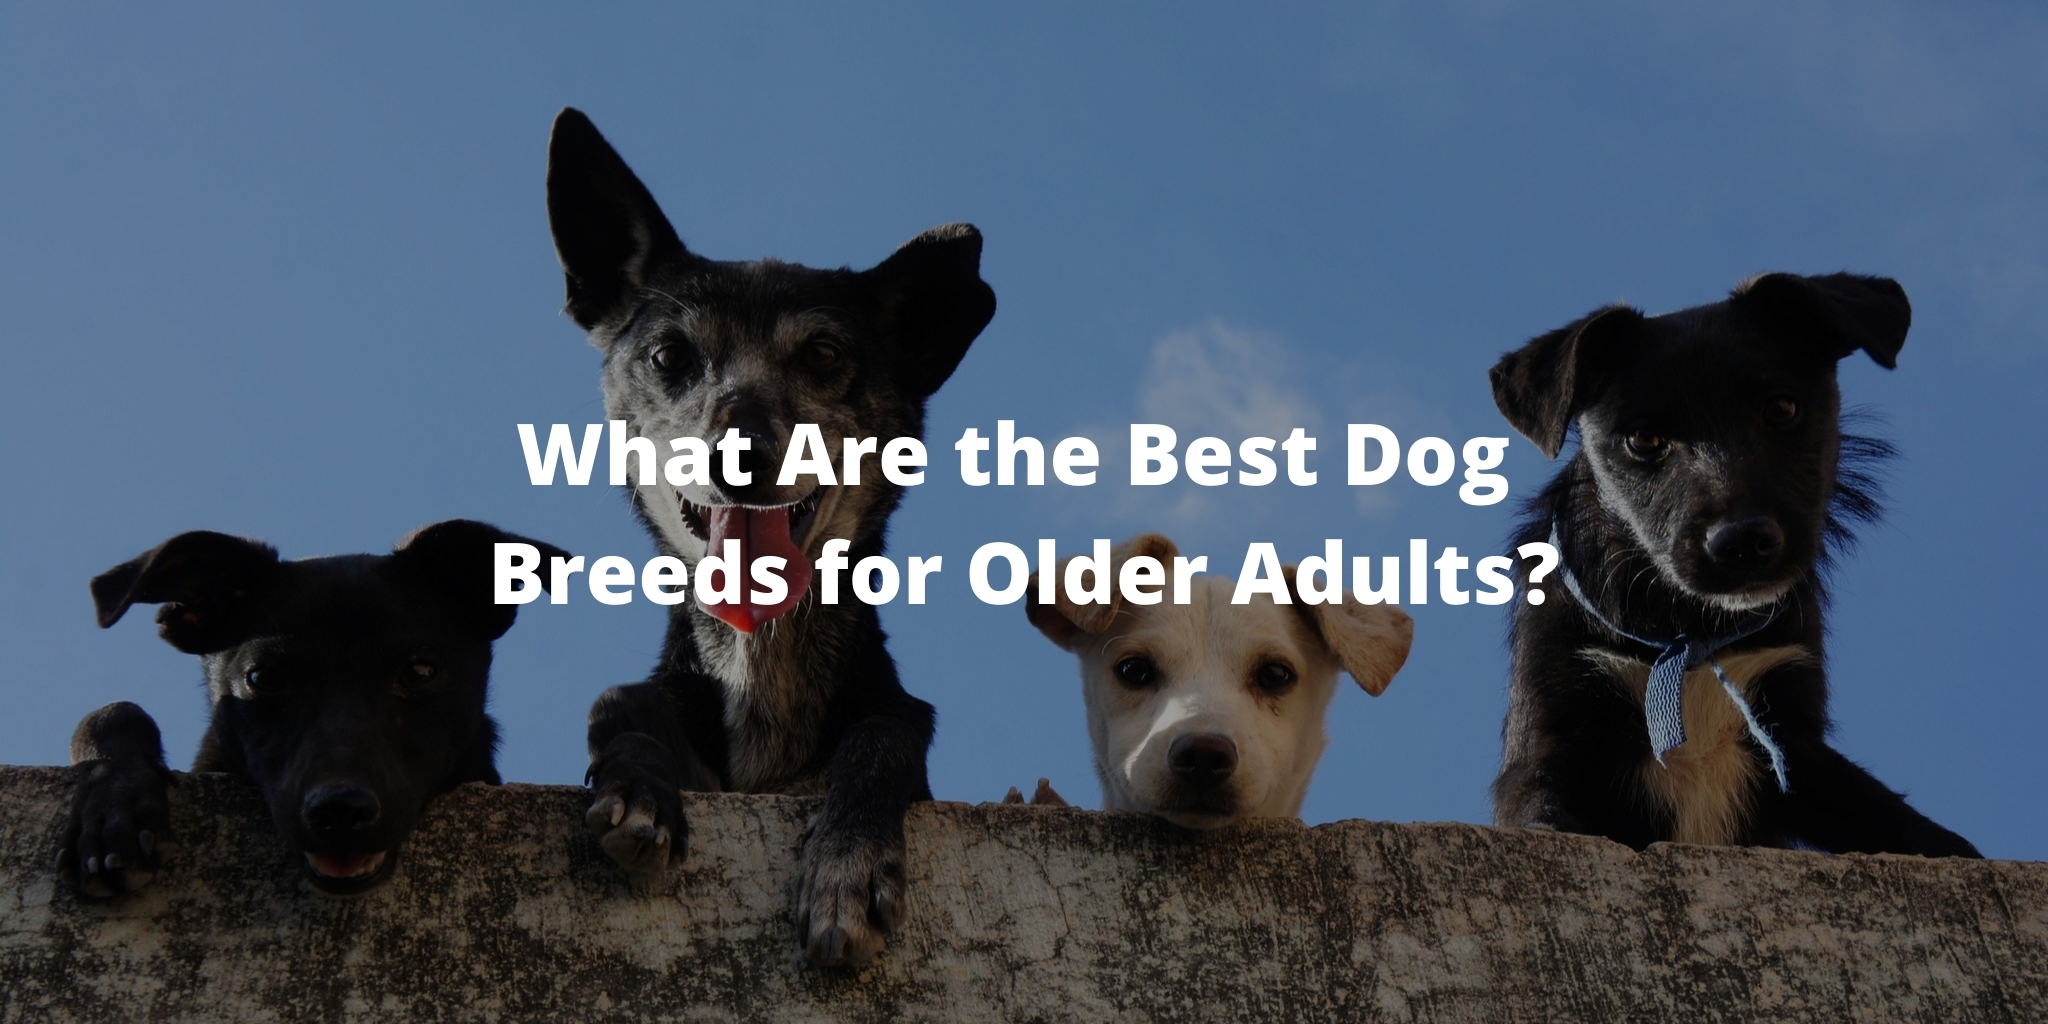 What Are the Best Dog Breeds for Older Adults?